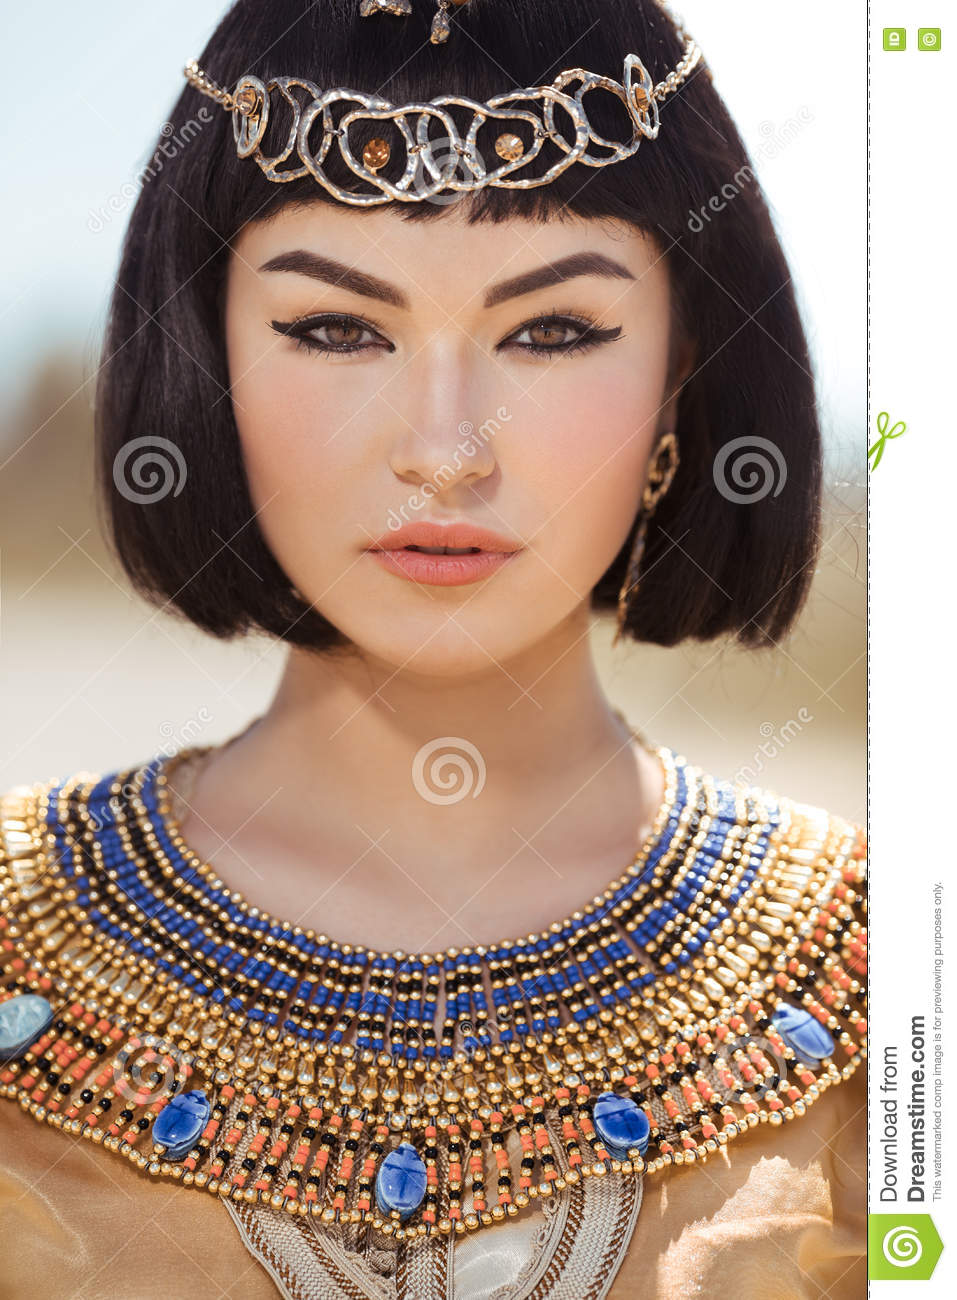 Prime Beautiful Woman With Fashion Make Up And Hairstyle Like Egyptian Short Hairstyles For Black Women Fulllsitofus